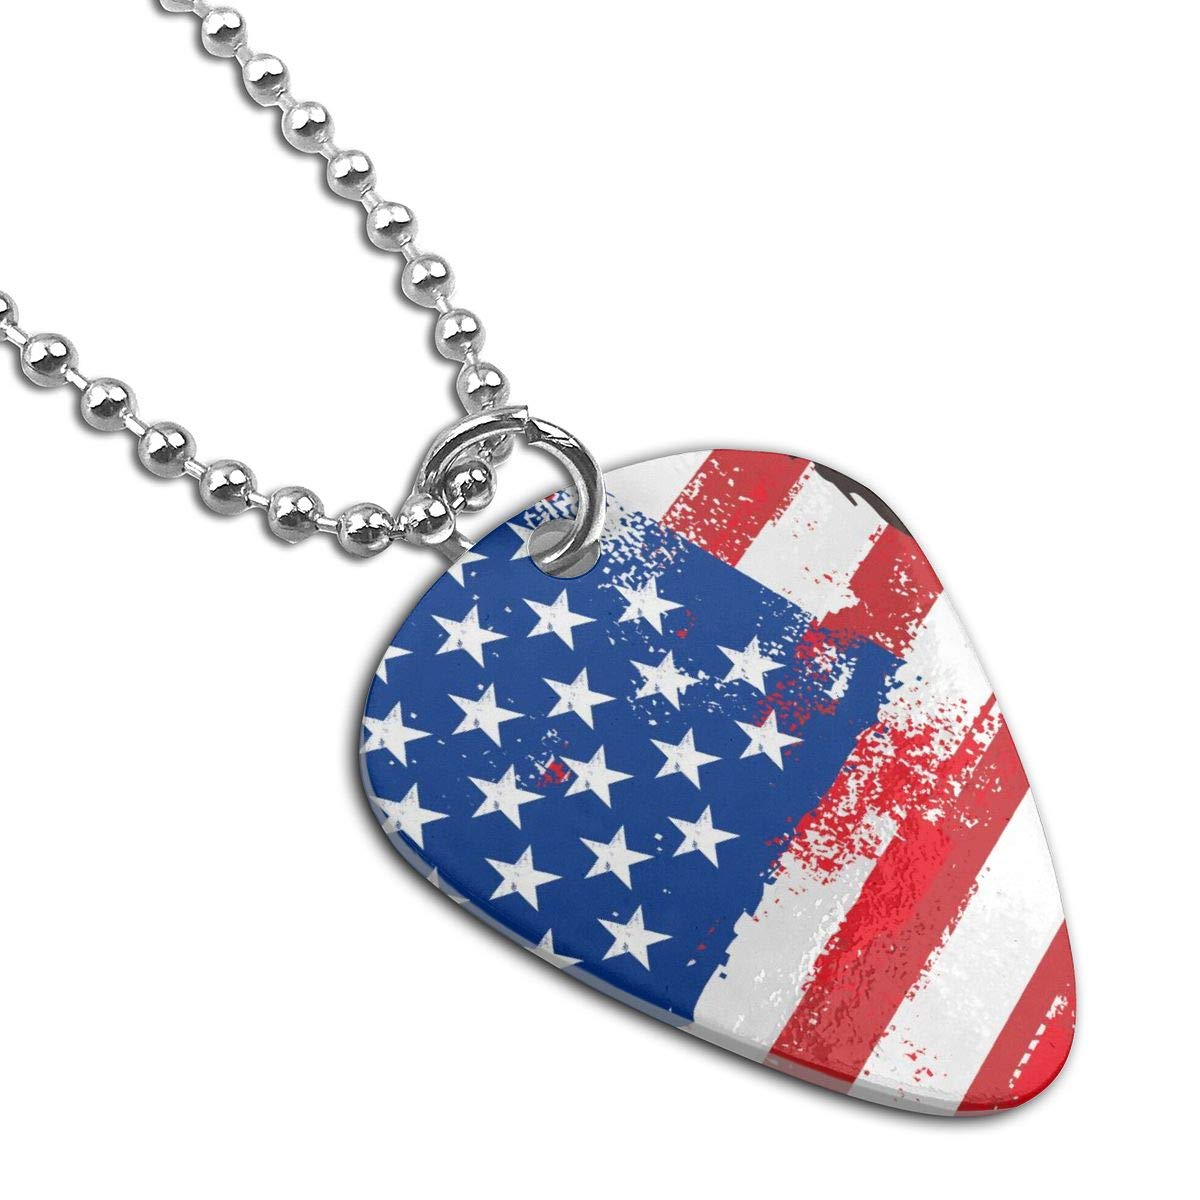 American Flag And Liberty Custom Guitar Pick Pendant Necklace Keychain